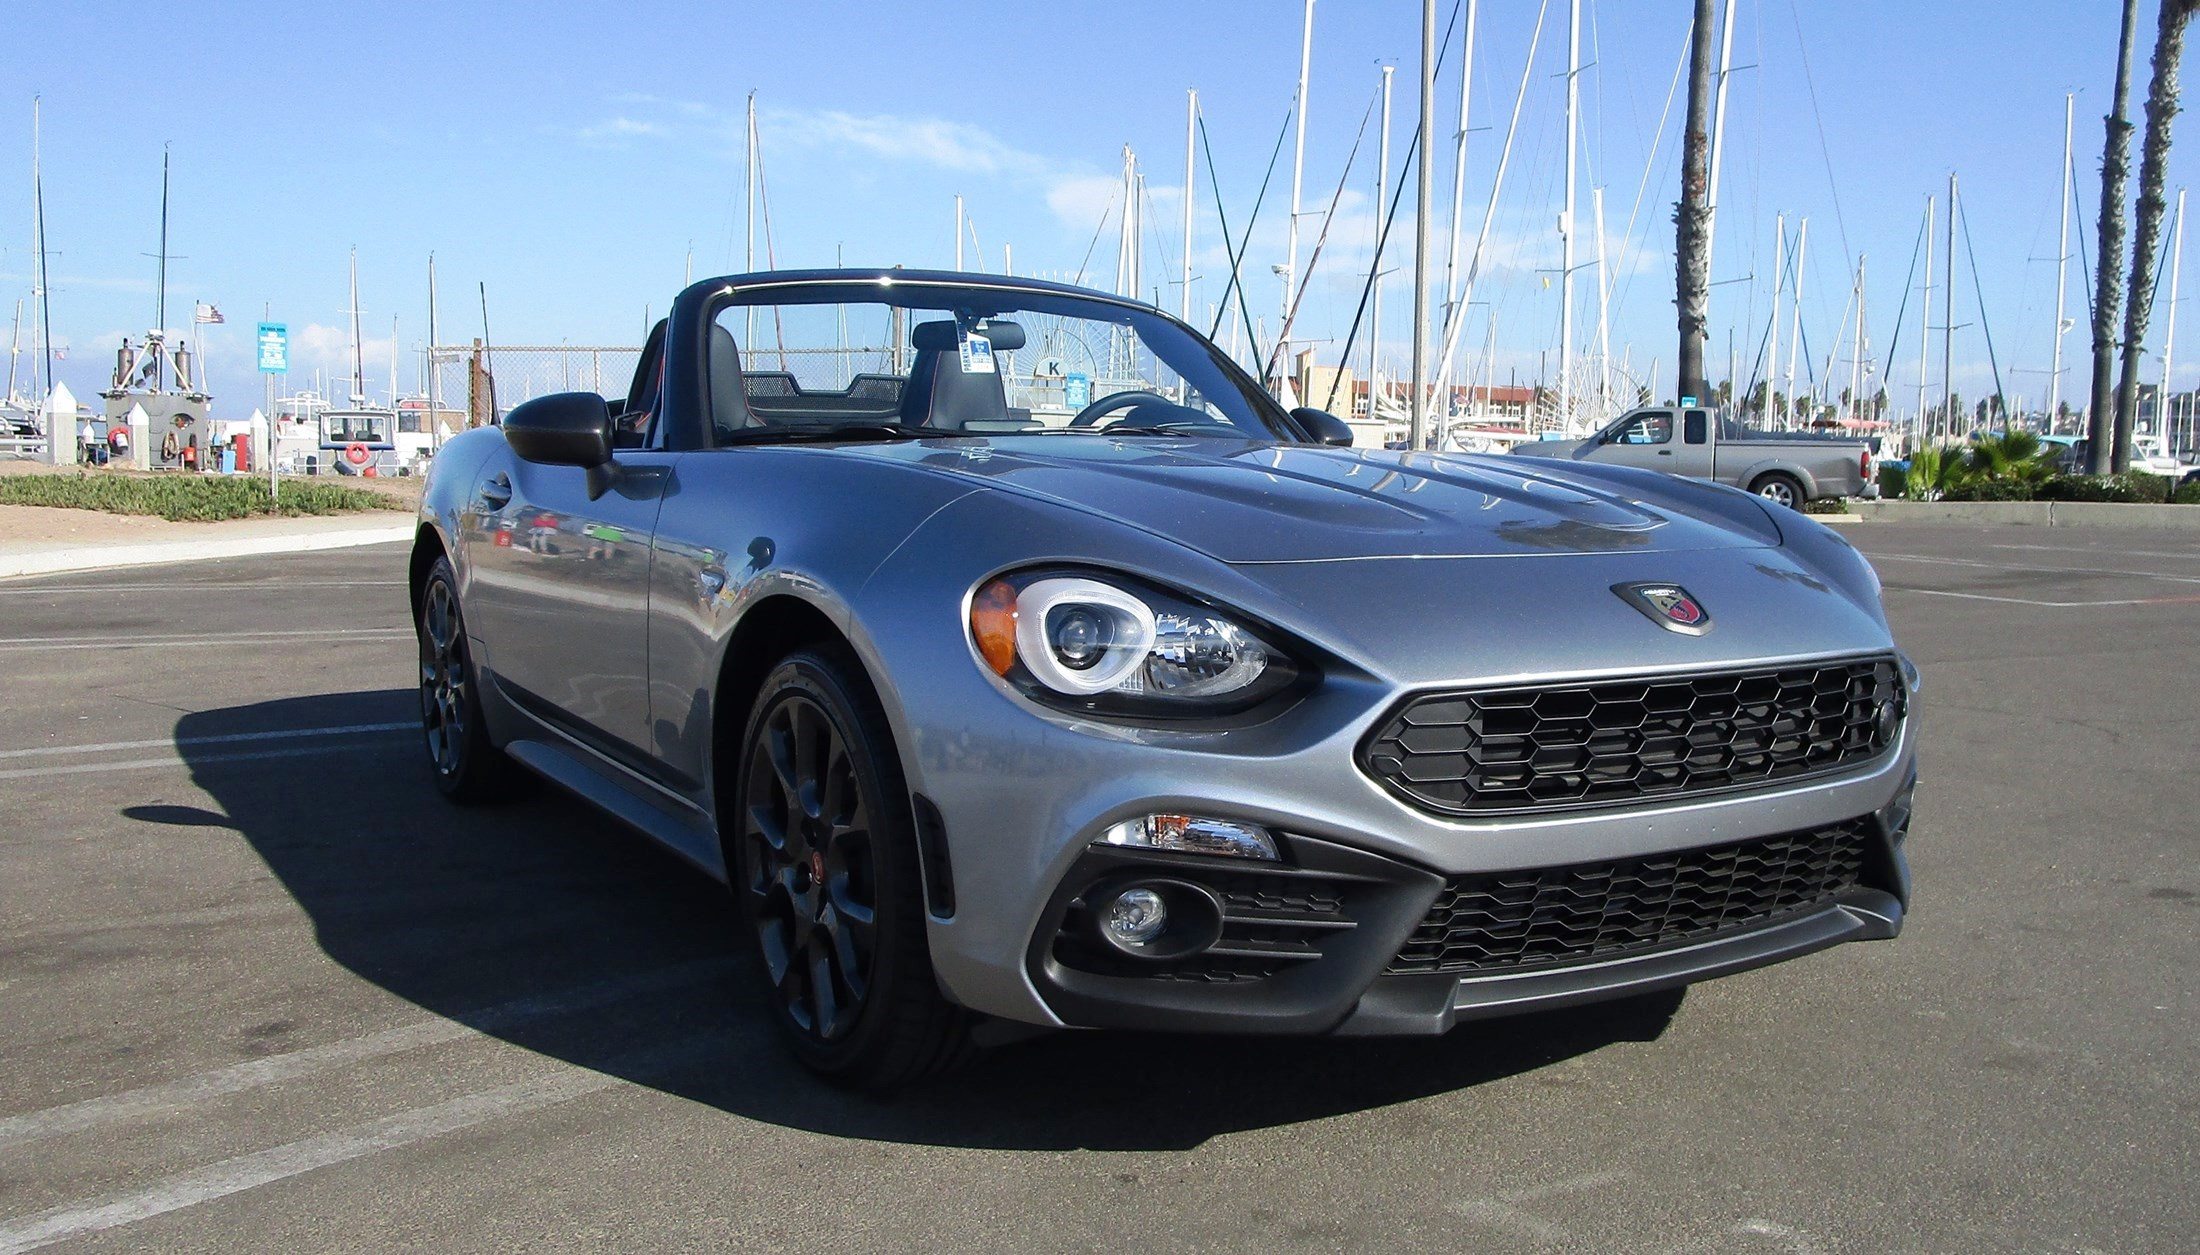 2018 fiat 124 spider abarth road test review by ben. Black Bedroom Furniture Sets. Home Design Ideas